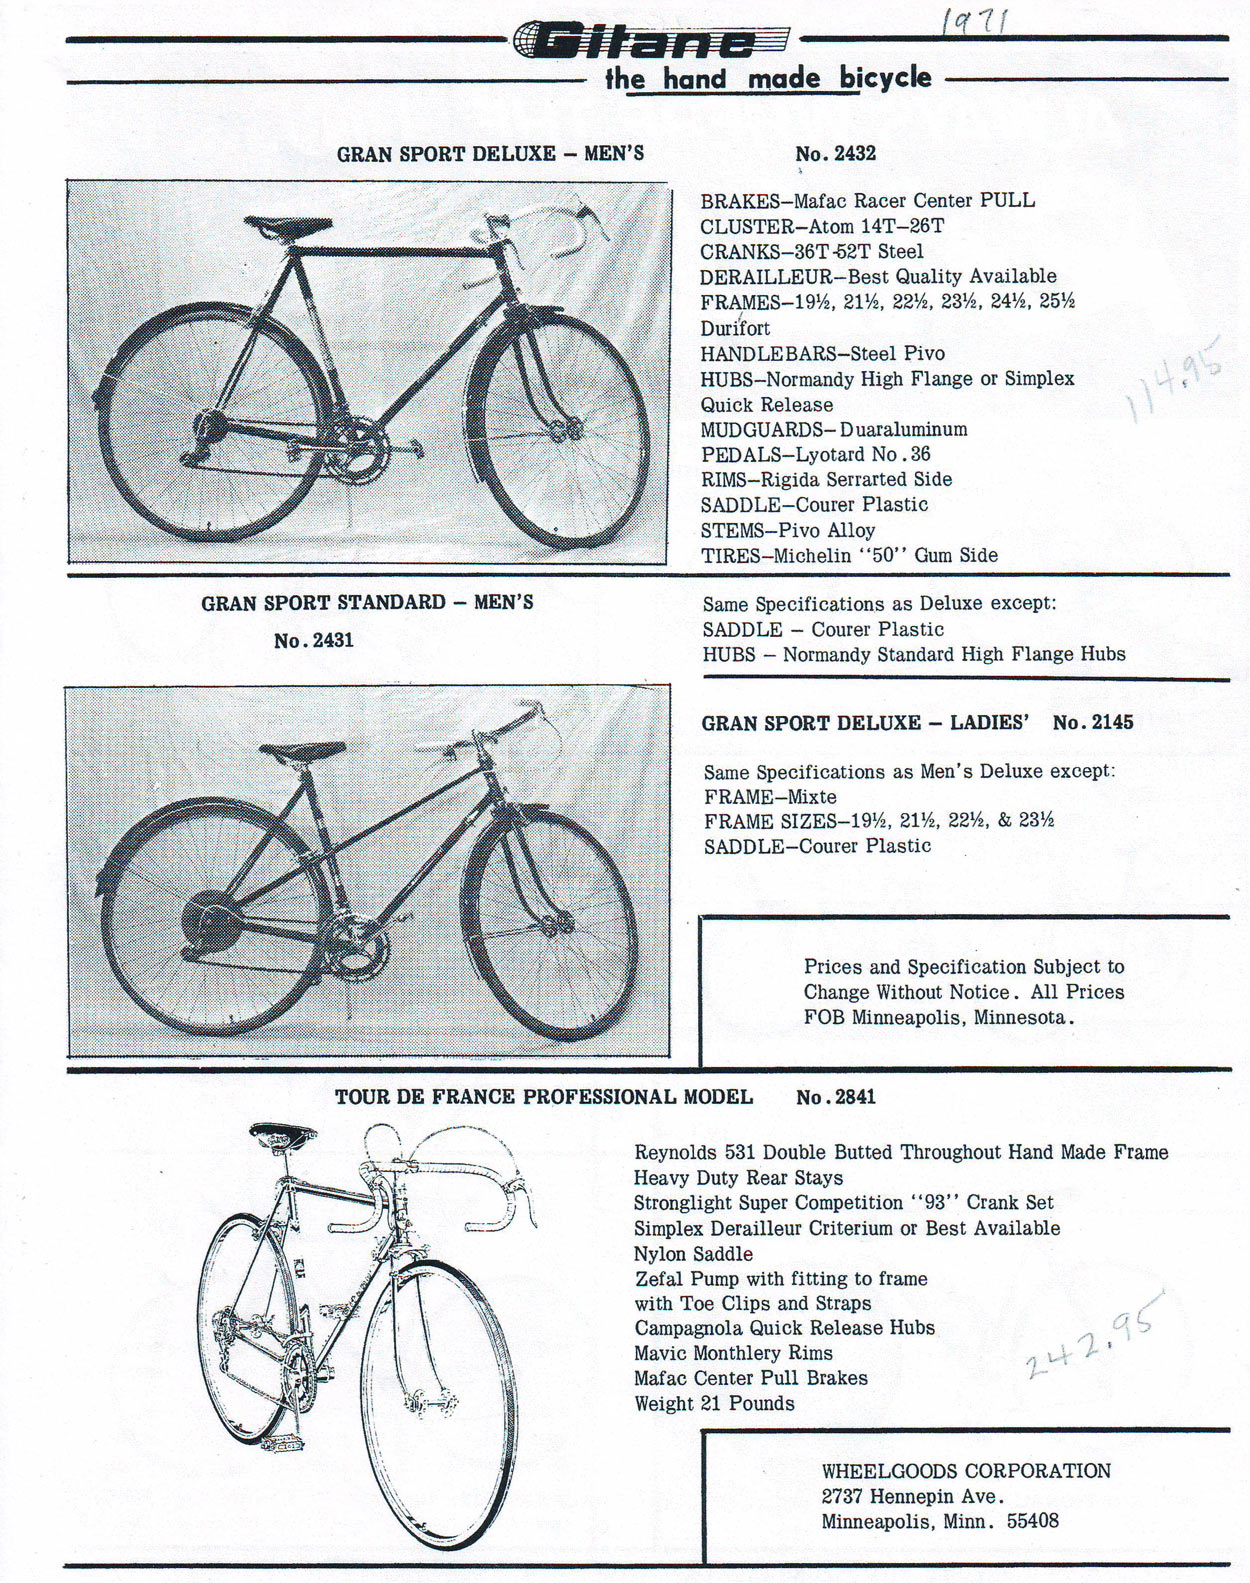 gitane tour de france 1972 1971-Price-Sheet-001